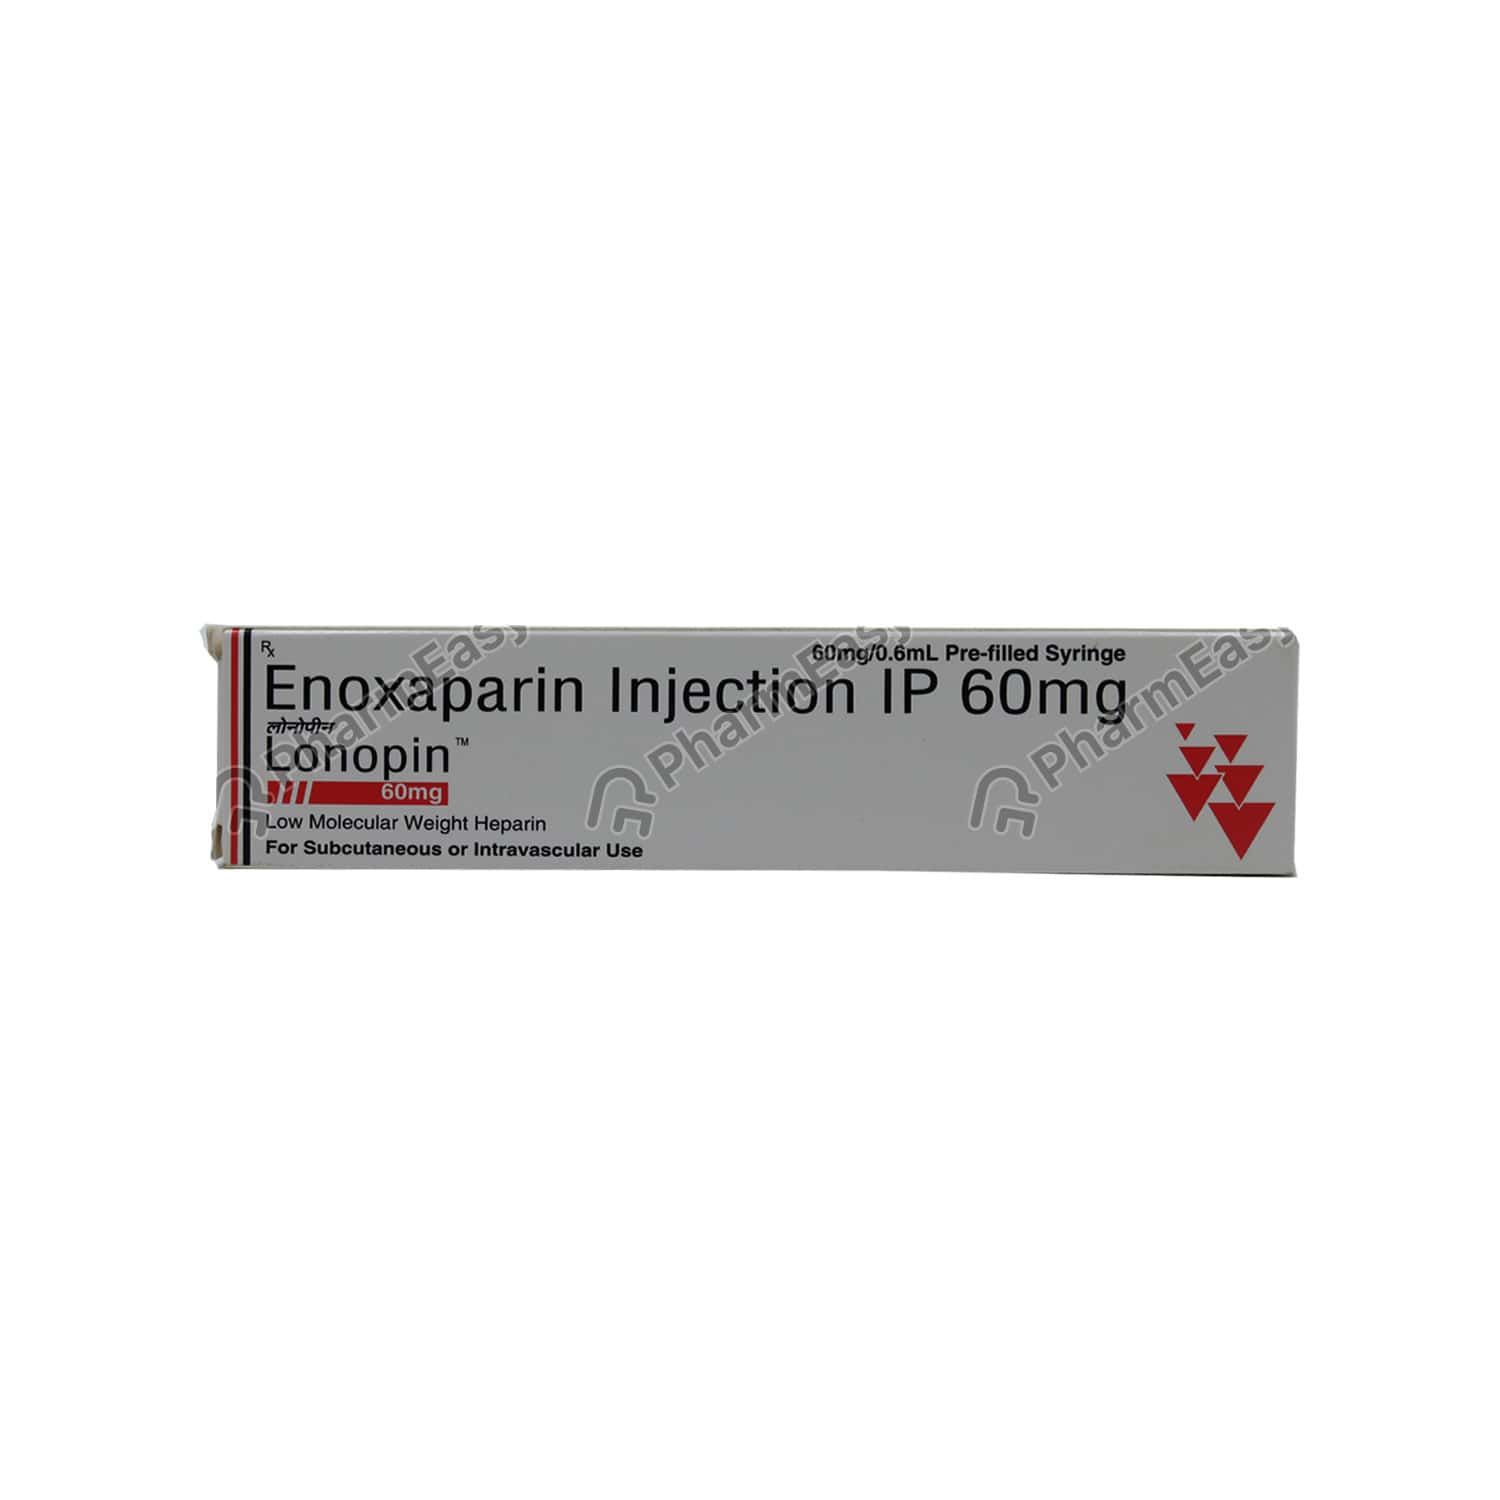 Lonopin 60mg Pre Filled Syringe Injection 0.6ml